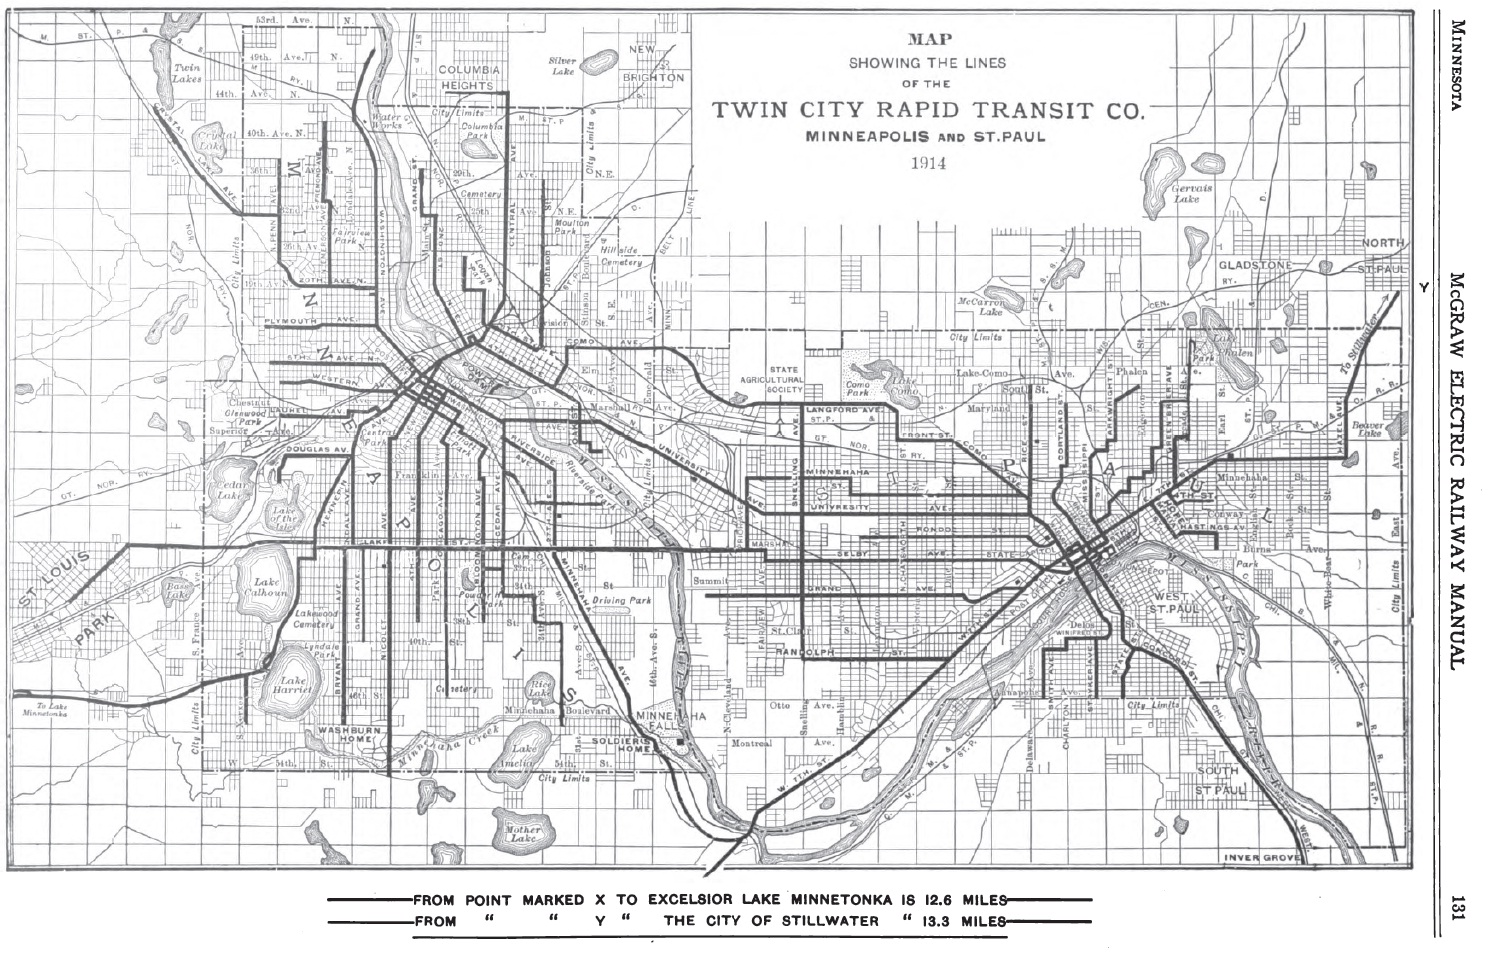 Map Showing the Lines of the Twin City Rapid Transit Co.: Minneapolis and St. Paul